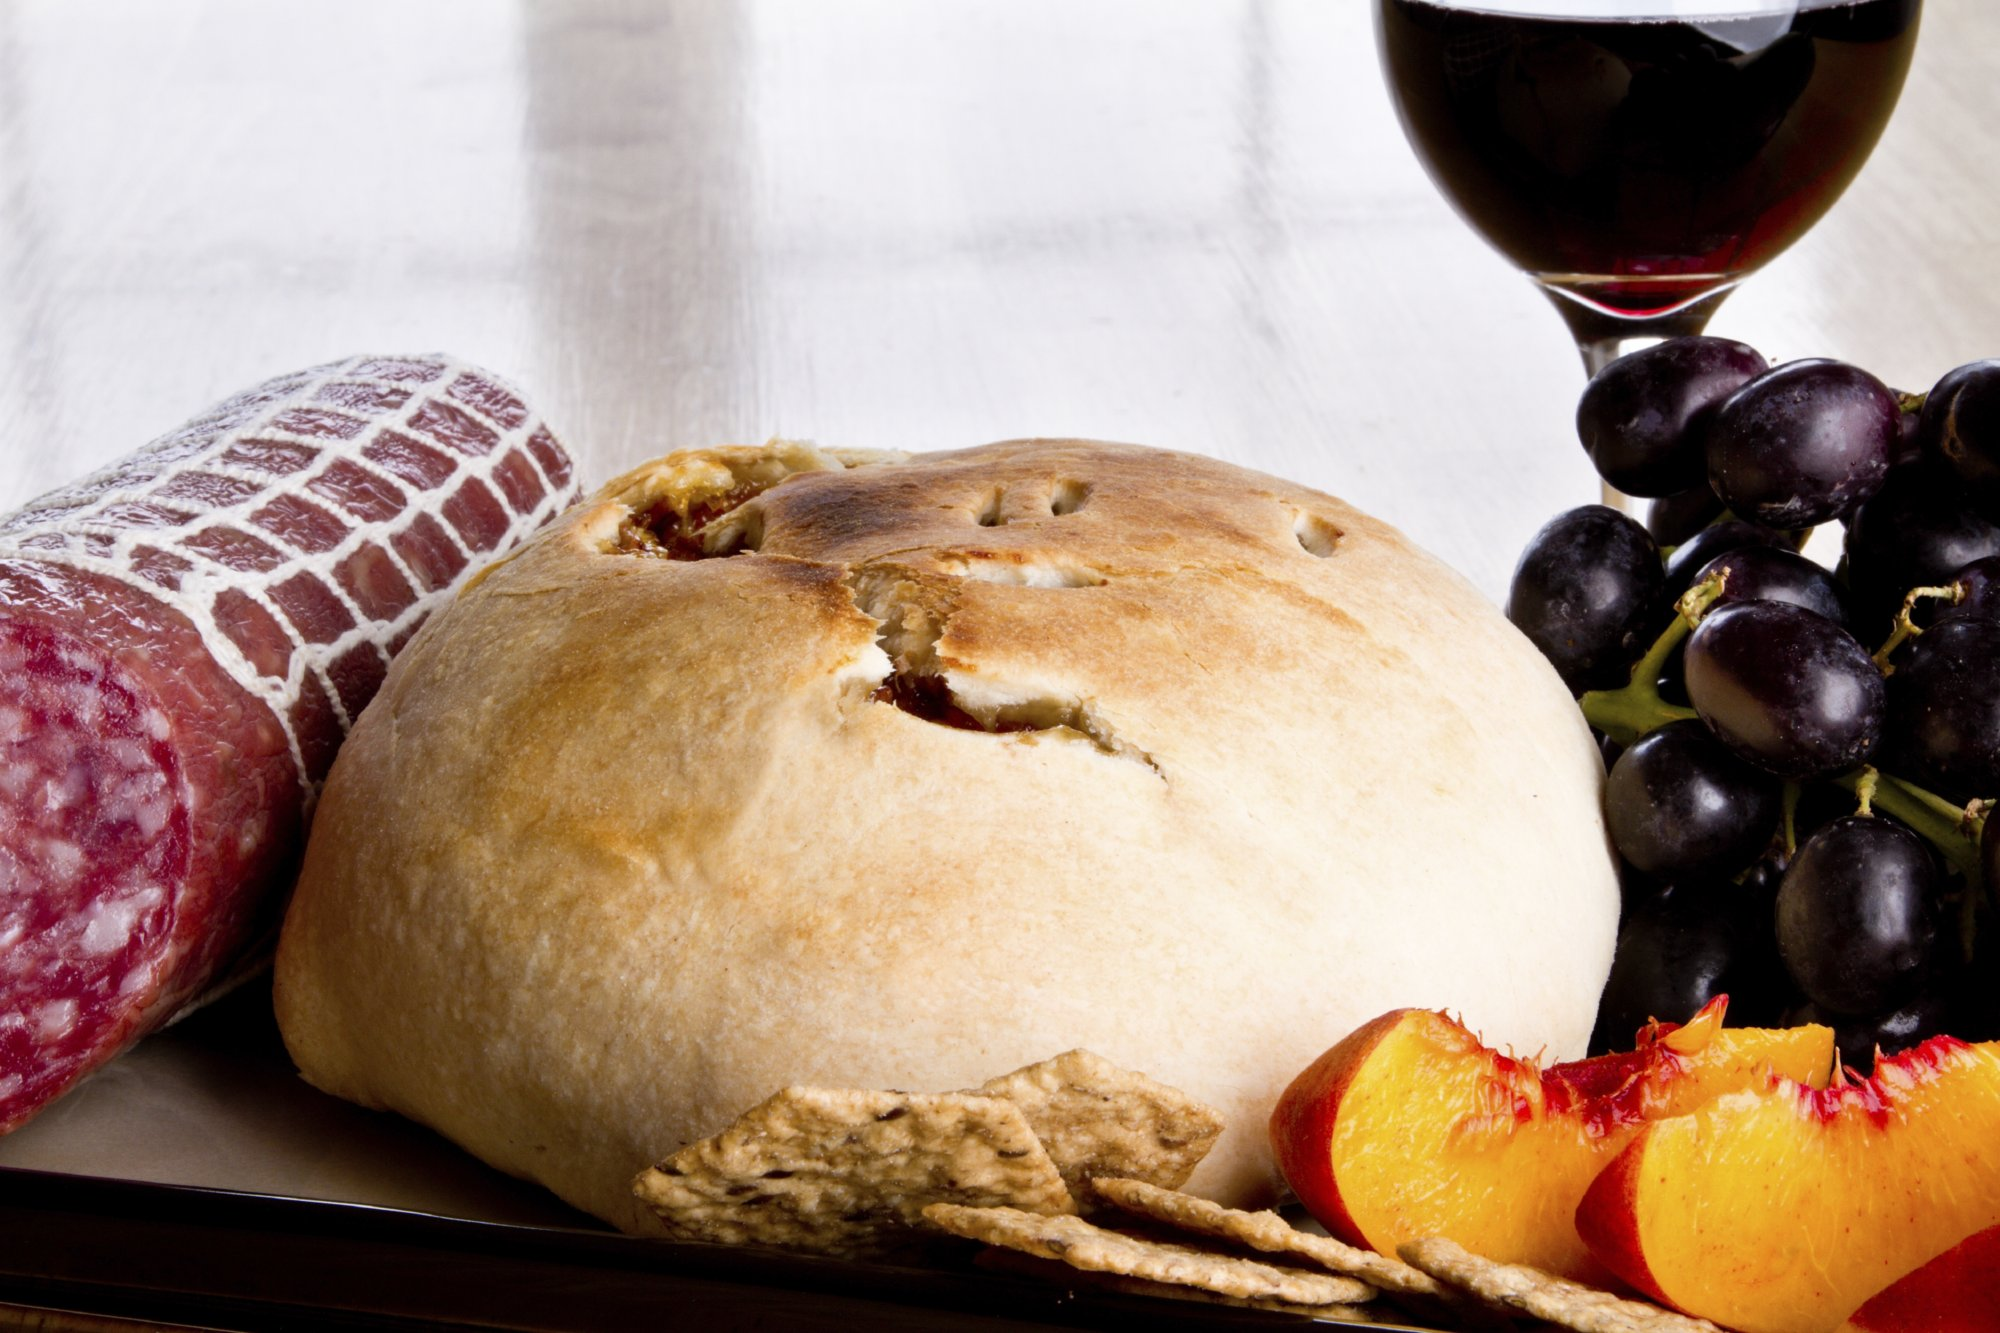 baked_brie_with_fruit_and_wine